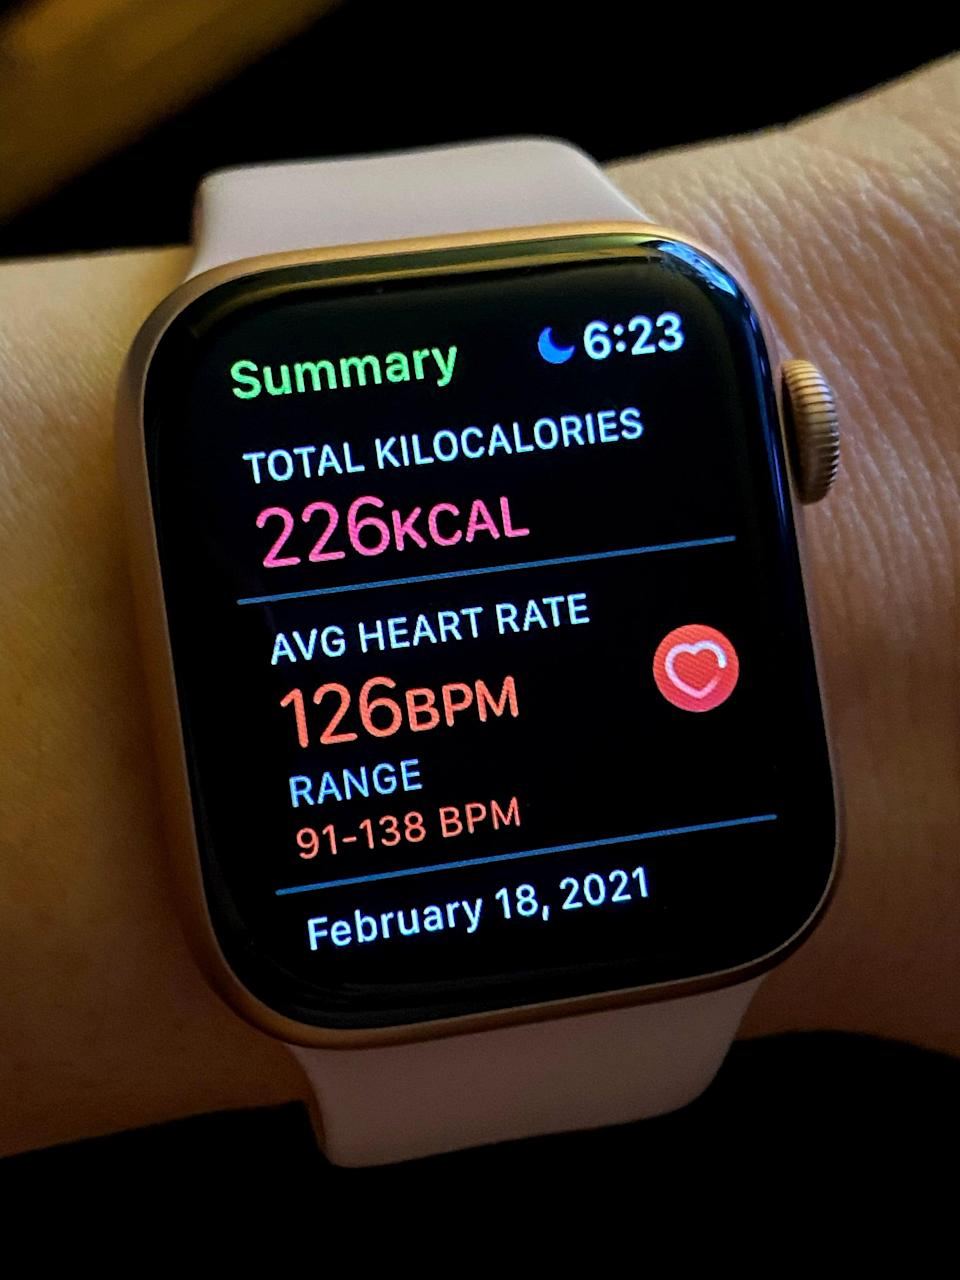 <p>The treadmill readout said I burned about 195 calories for this 30-minute workout. But I also tracked each workout over the two weeks with my Apple Watch, which noted that I burned a range between 210 and 230 total calories. For comparison, for me:</p> <p>30-minute rowing workout at a moderate pace: burns around 205 calories<br> 30-minute outdoor run: burns about 240 calories<br> 30-minute, chill-paced outdoor walk around block (with doggy pee breaks): burns about 140 calories</p> <p>I noticed that when doing these walking workouts, setting the pace to 3.0 mph forced me to keep that speed up. When I'm rowing, I'm in charge of keeping my pace, and on the Apple Watch, I could see that my heart rate range was about 20 BPM (beats per minute) lower than during the 12-3-30 workouts.</p> <h2>12-3-30 Workout Results</h2> <p>Over the course of the two weeks, I definitely felt leaner in my belly. And doing this walking workout inspired me to use my treadmill desk a little more. But I also didn't take as many walks outside because of freezing temps here in Vermont, so I think that evened out.</p>